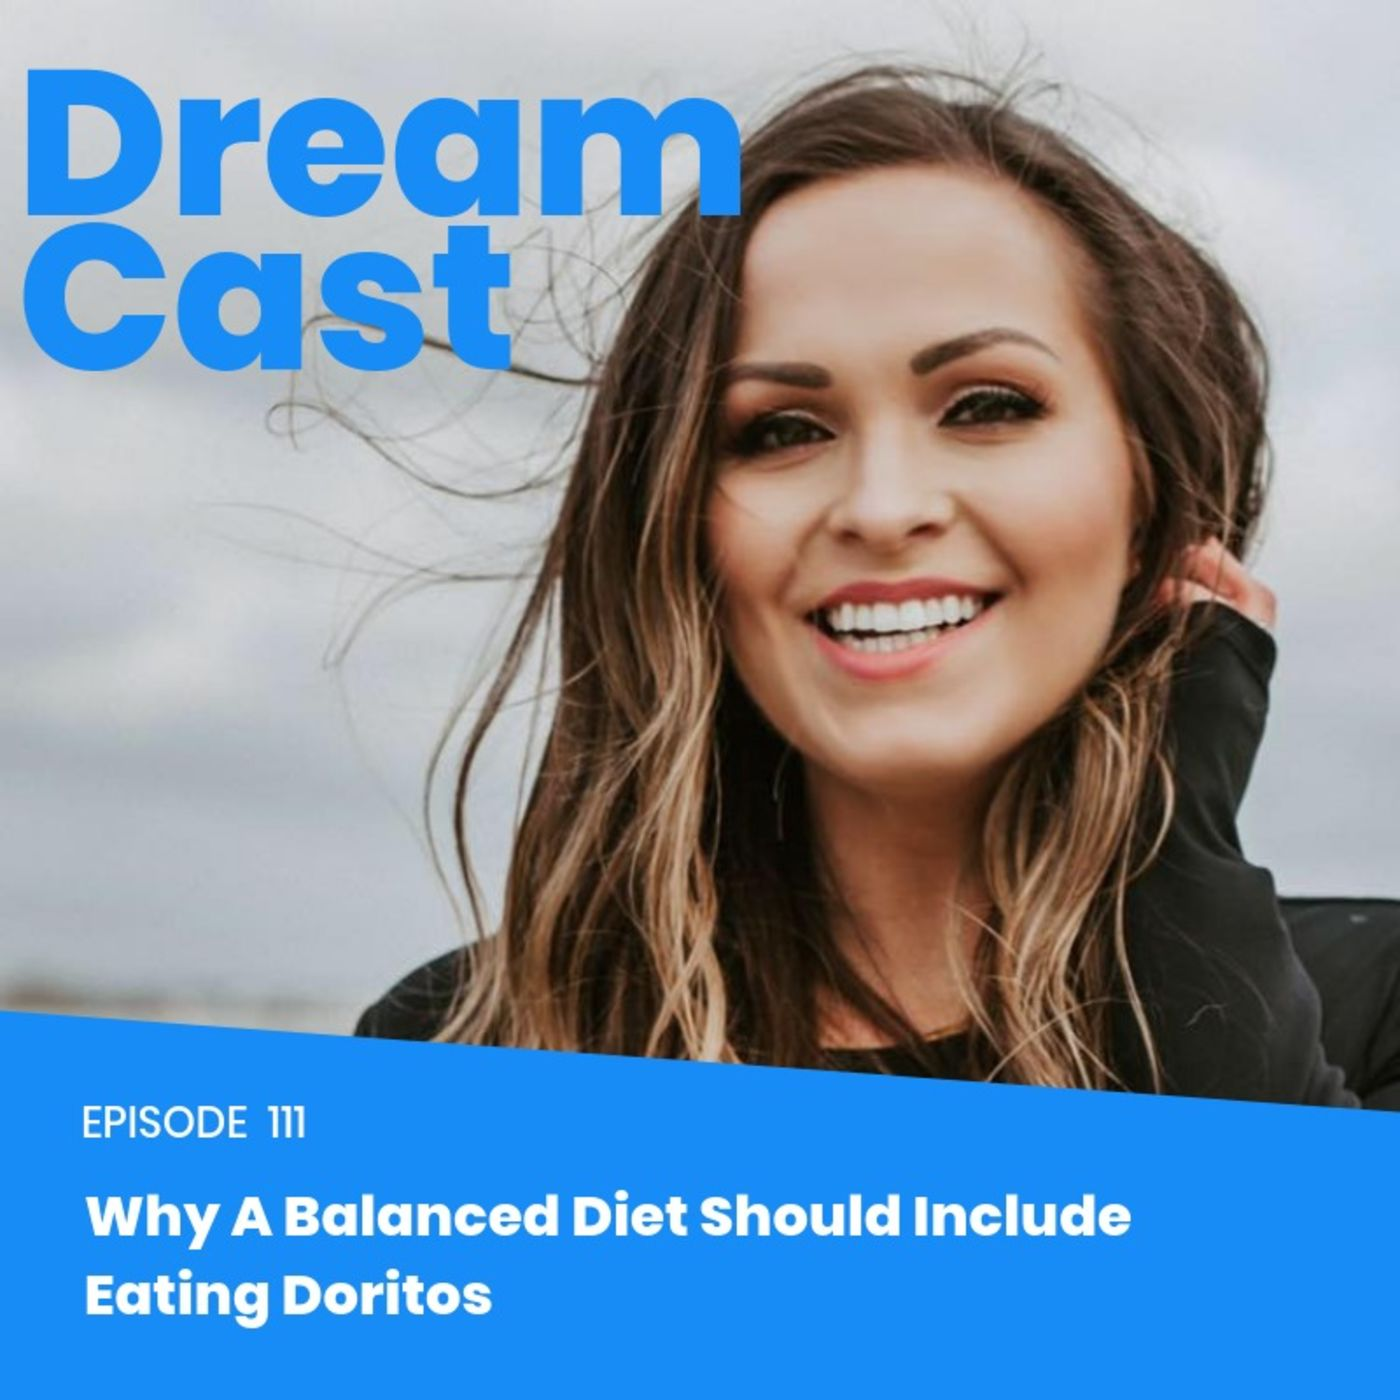 Episode 111 - Why A Balanced Diet Should Include Eating Doritos